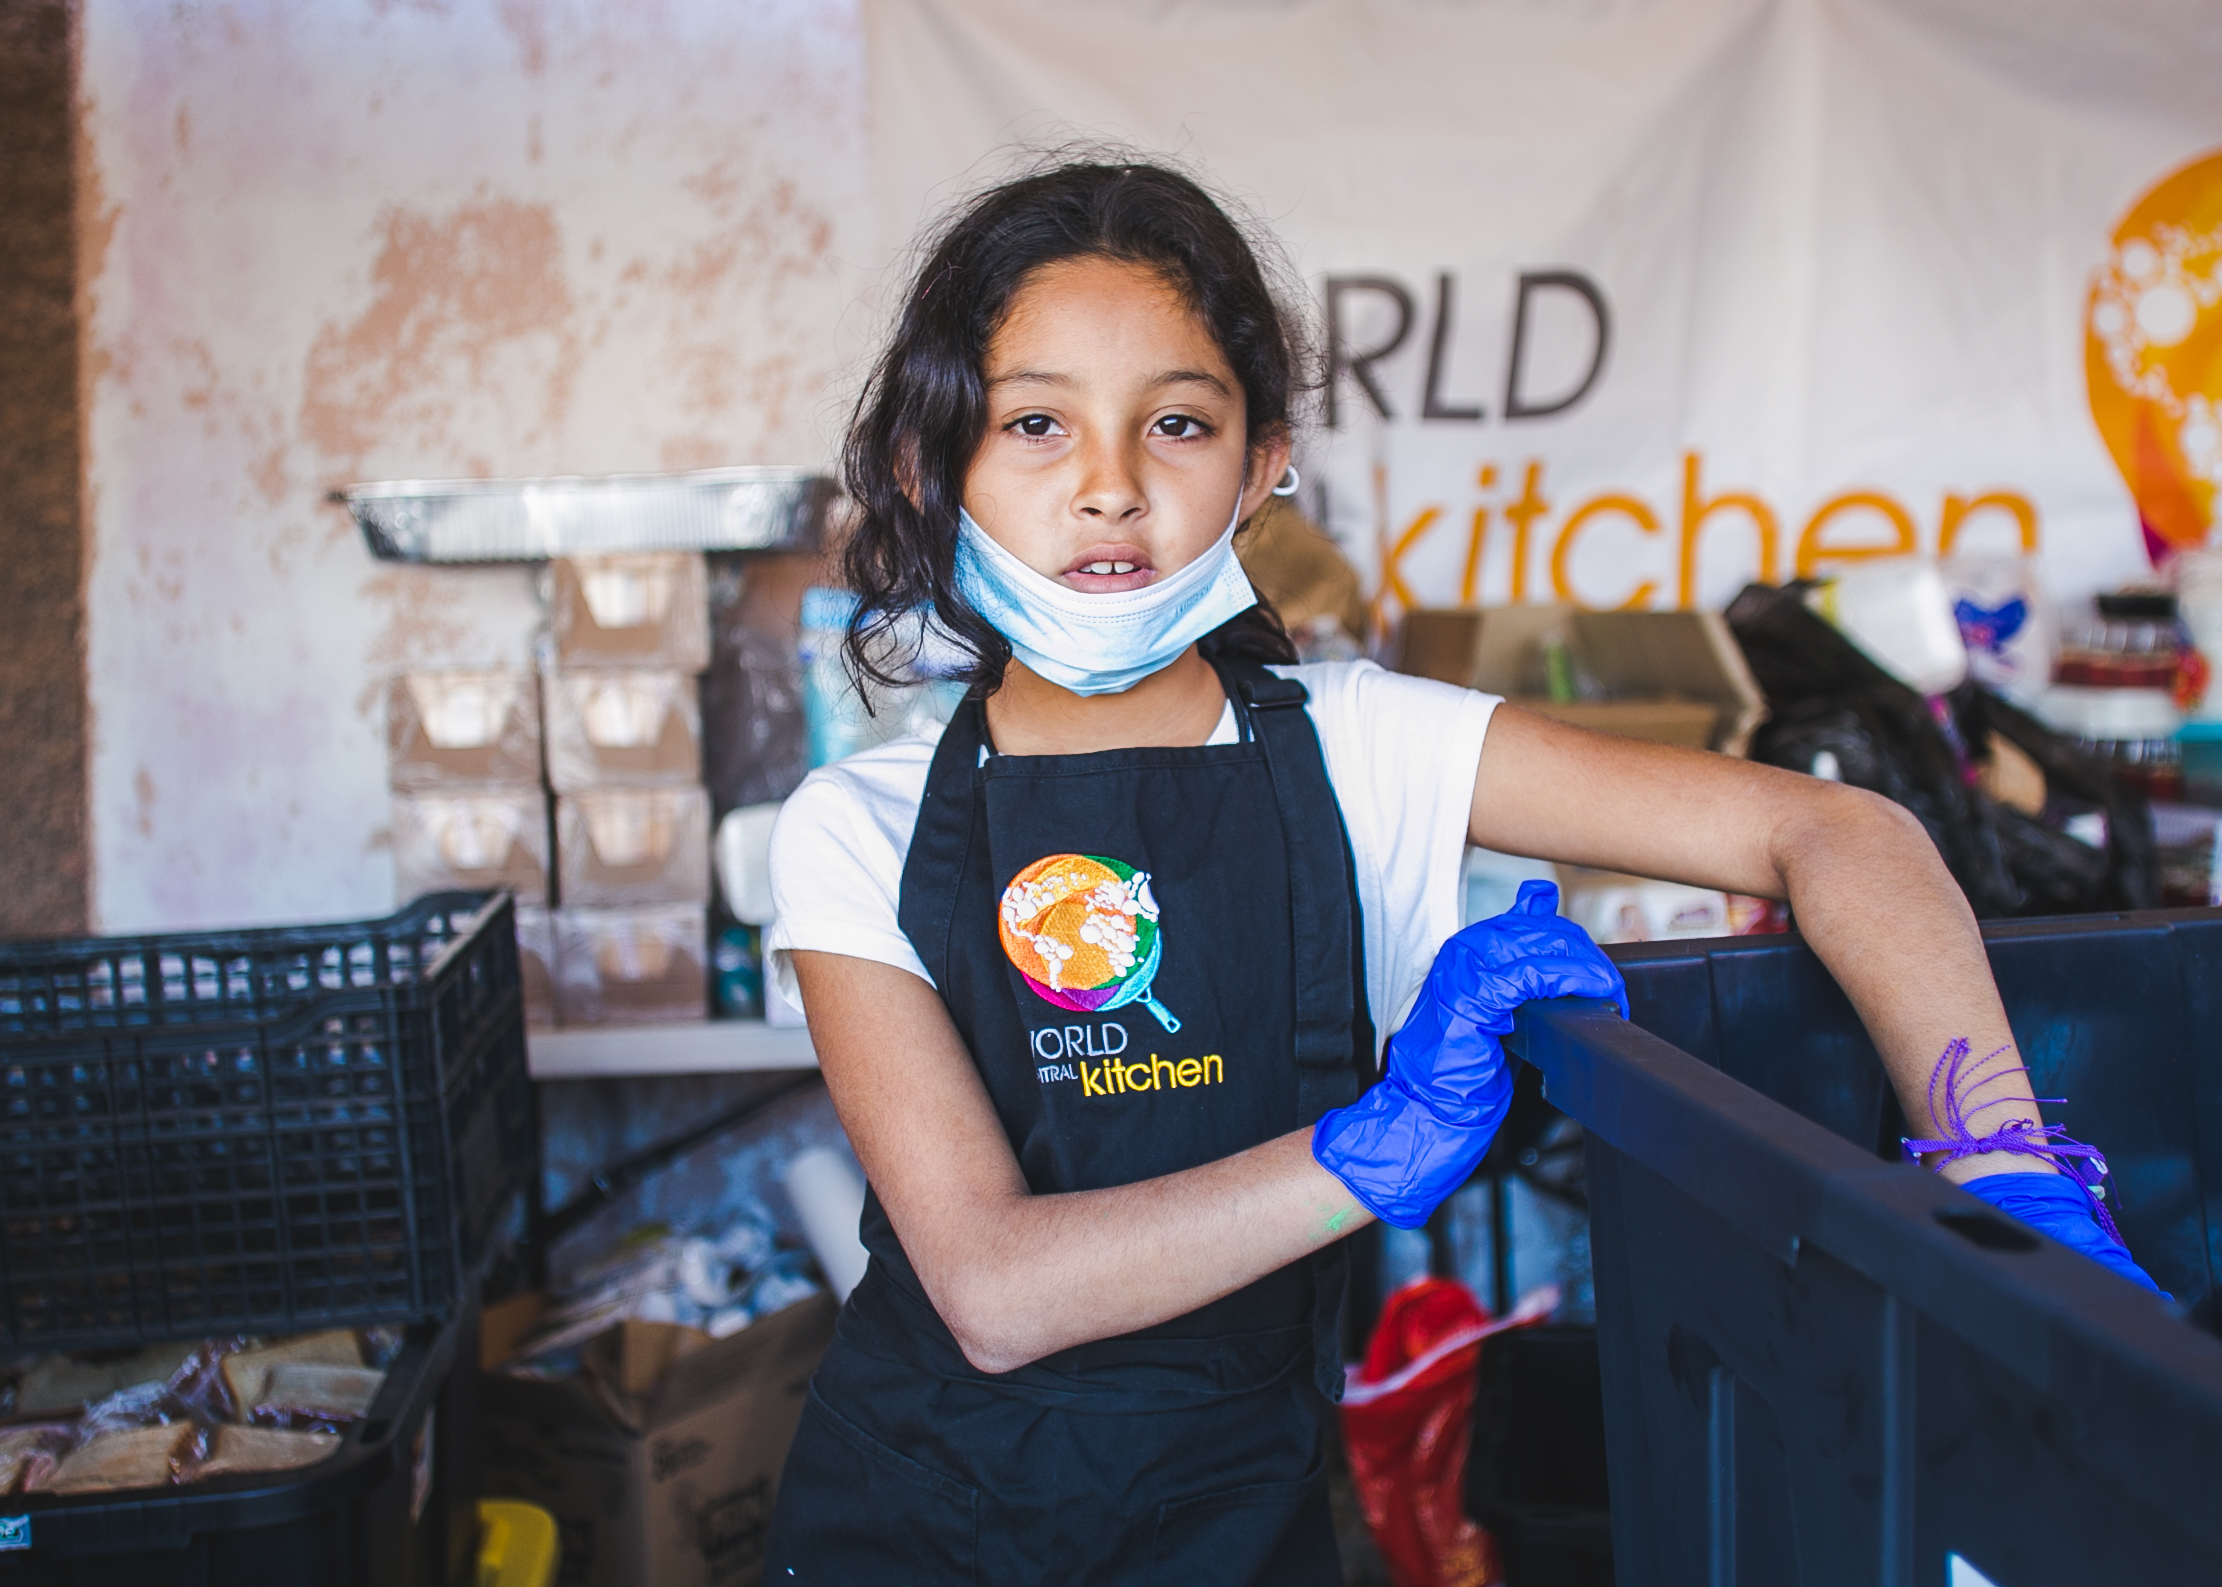 A refugee and kitchen volunteer serves lunch to over 1,500 at the Barretal camp in Tijuana, Mexico. Each day, 5-6 children from the camp assist World Central Kitchen with serving lunch and dinner. The goal of the program surrounds creating a sustainable refugee-operated kitchen in Tijuana to serve for months (or even years) to come. The recent influx in caravan activity has drawn mass media attention - but contrary to popular belief - refugees from Central America have been arriving in Tijuana for over a decade.